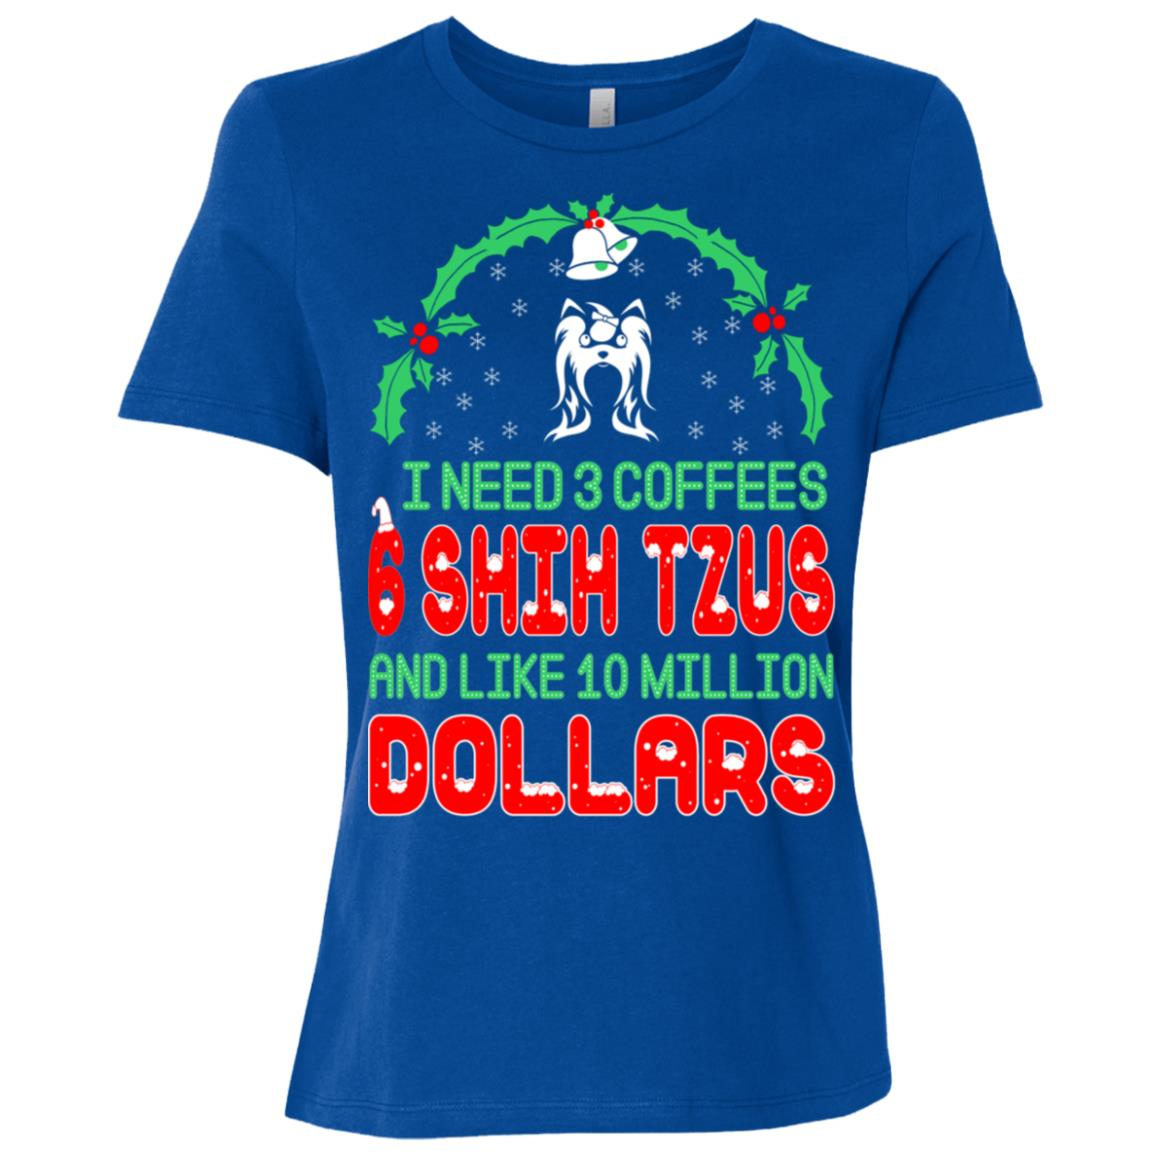 Need 3 Coffees 6 Shih Tzus Christmas Ugly Sweater-1 Women Short Sleeve T-Shirt